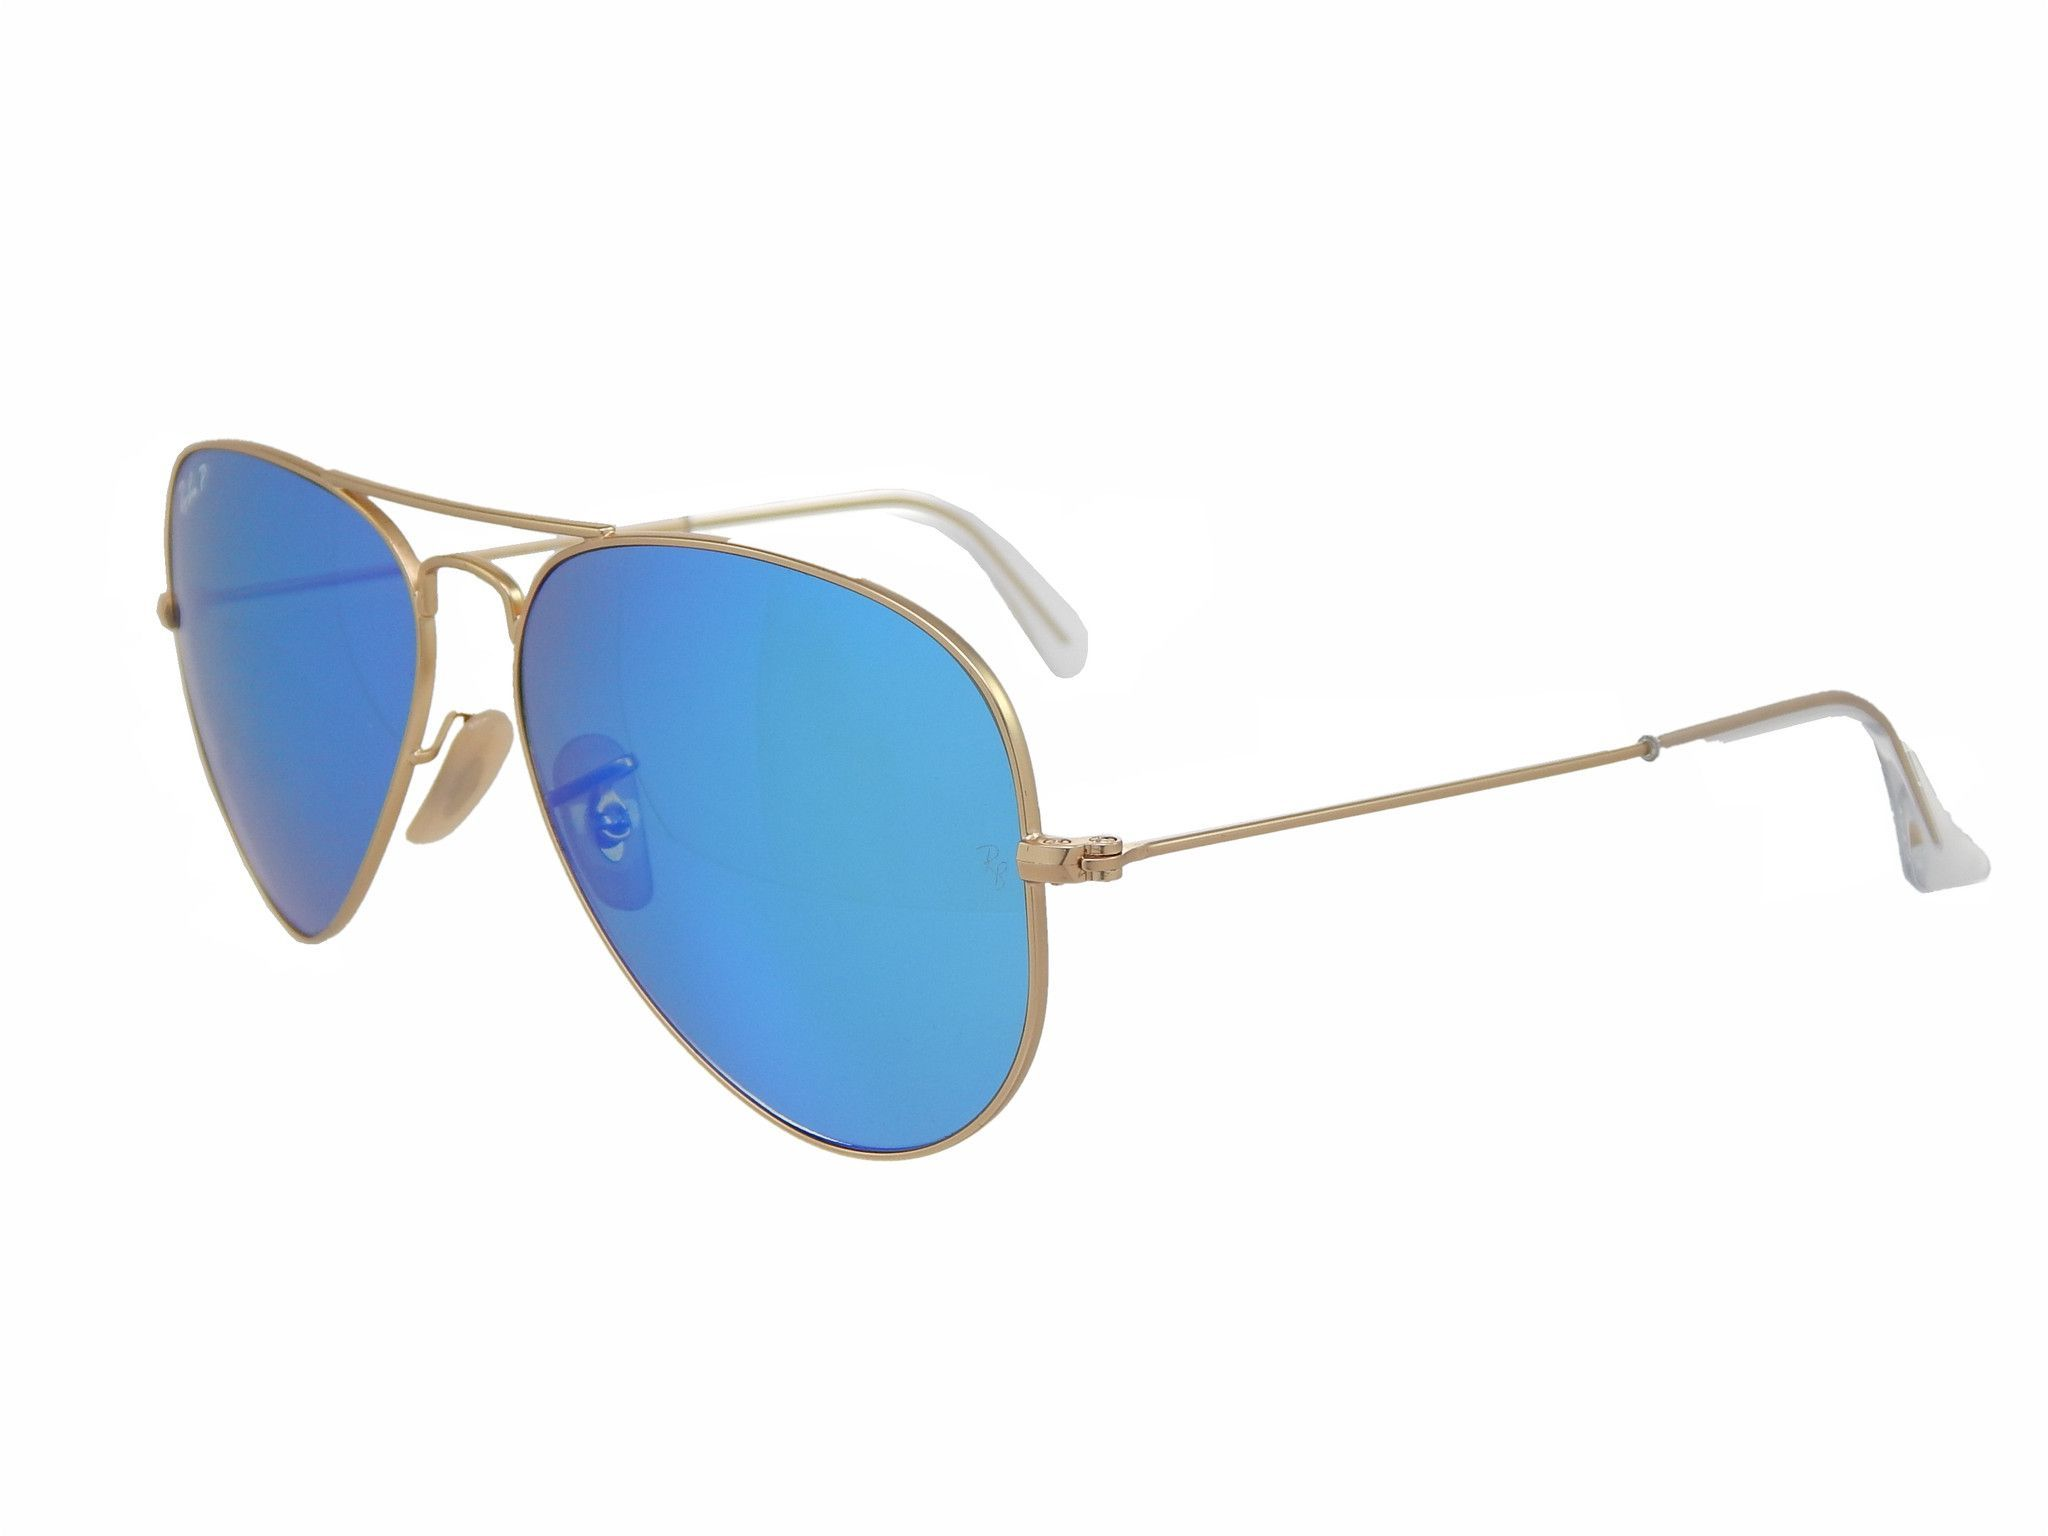 2153a01307 Ray Ban Aviator RB3025 112 4L Gold Blue Flash 58mm Polarized Sunglasses